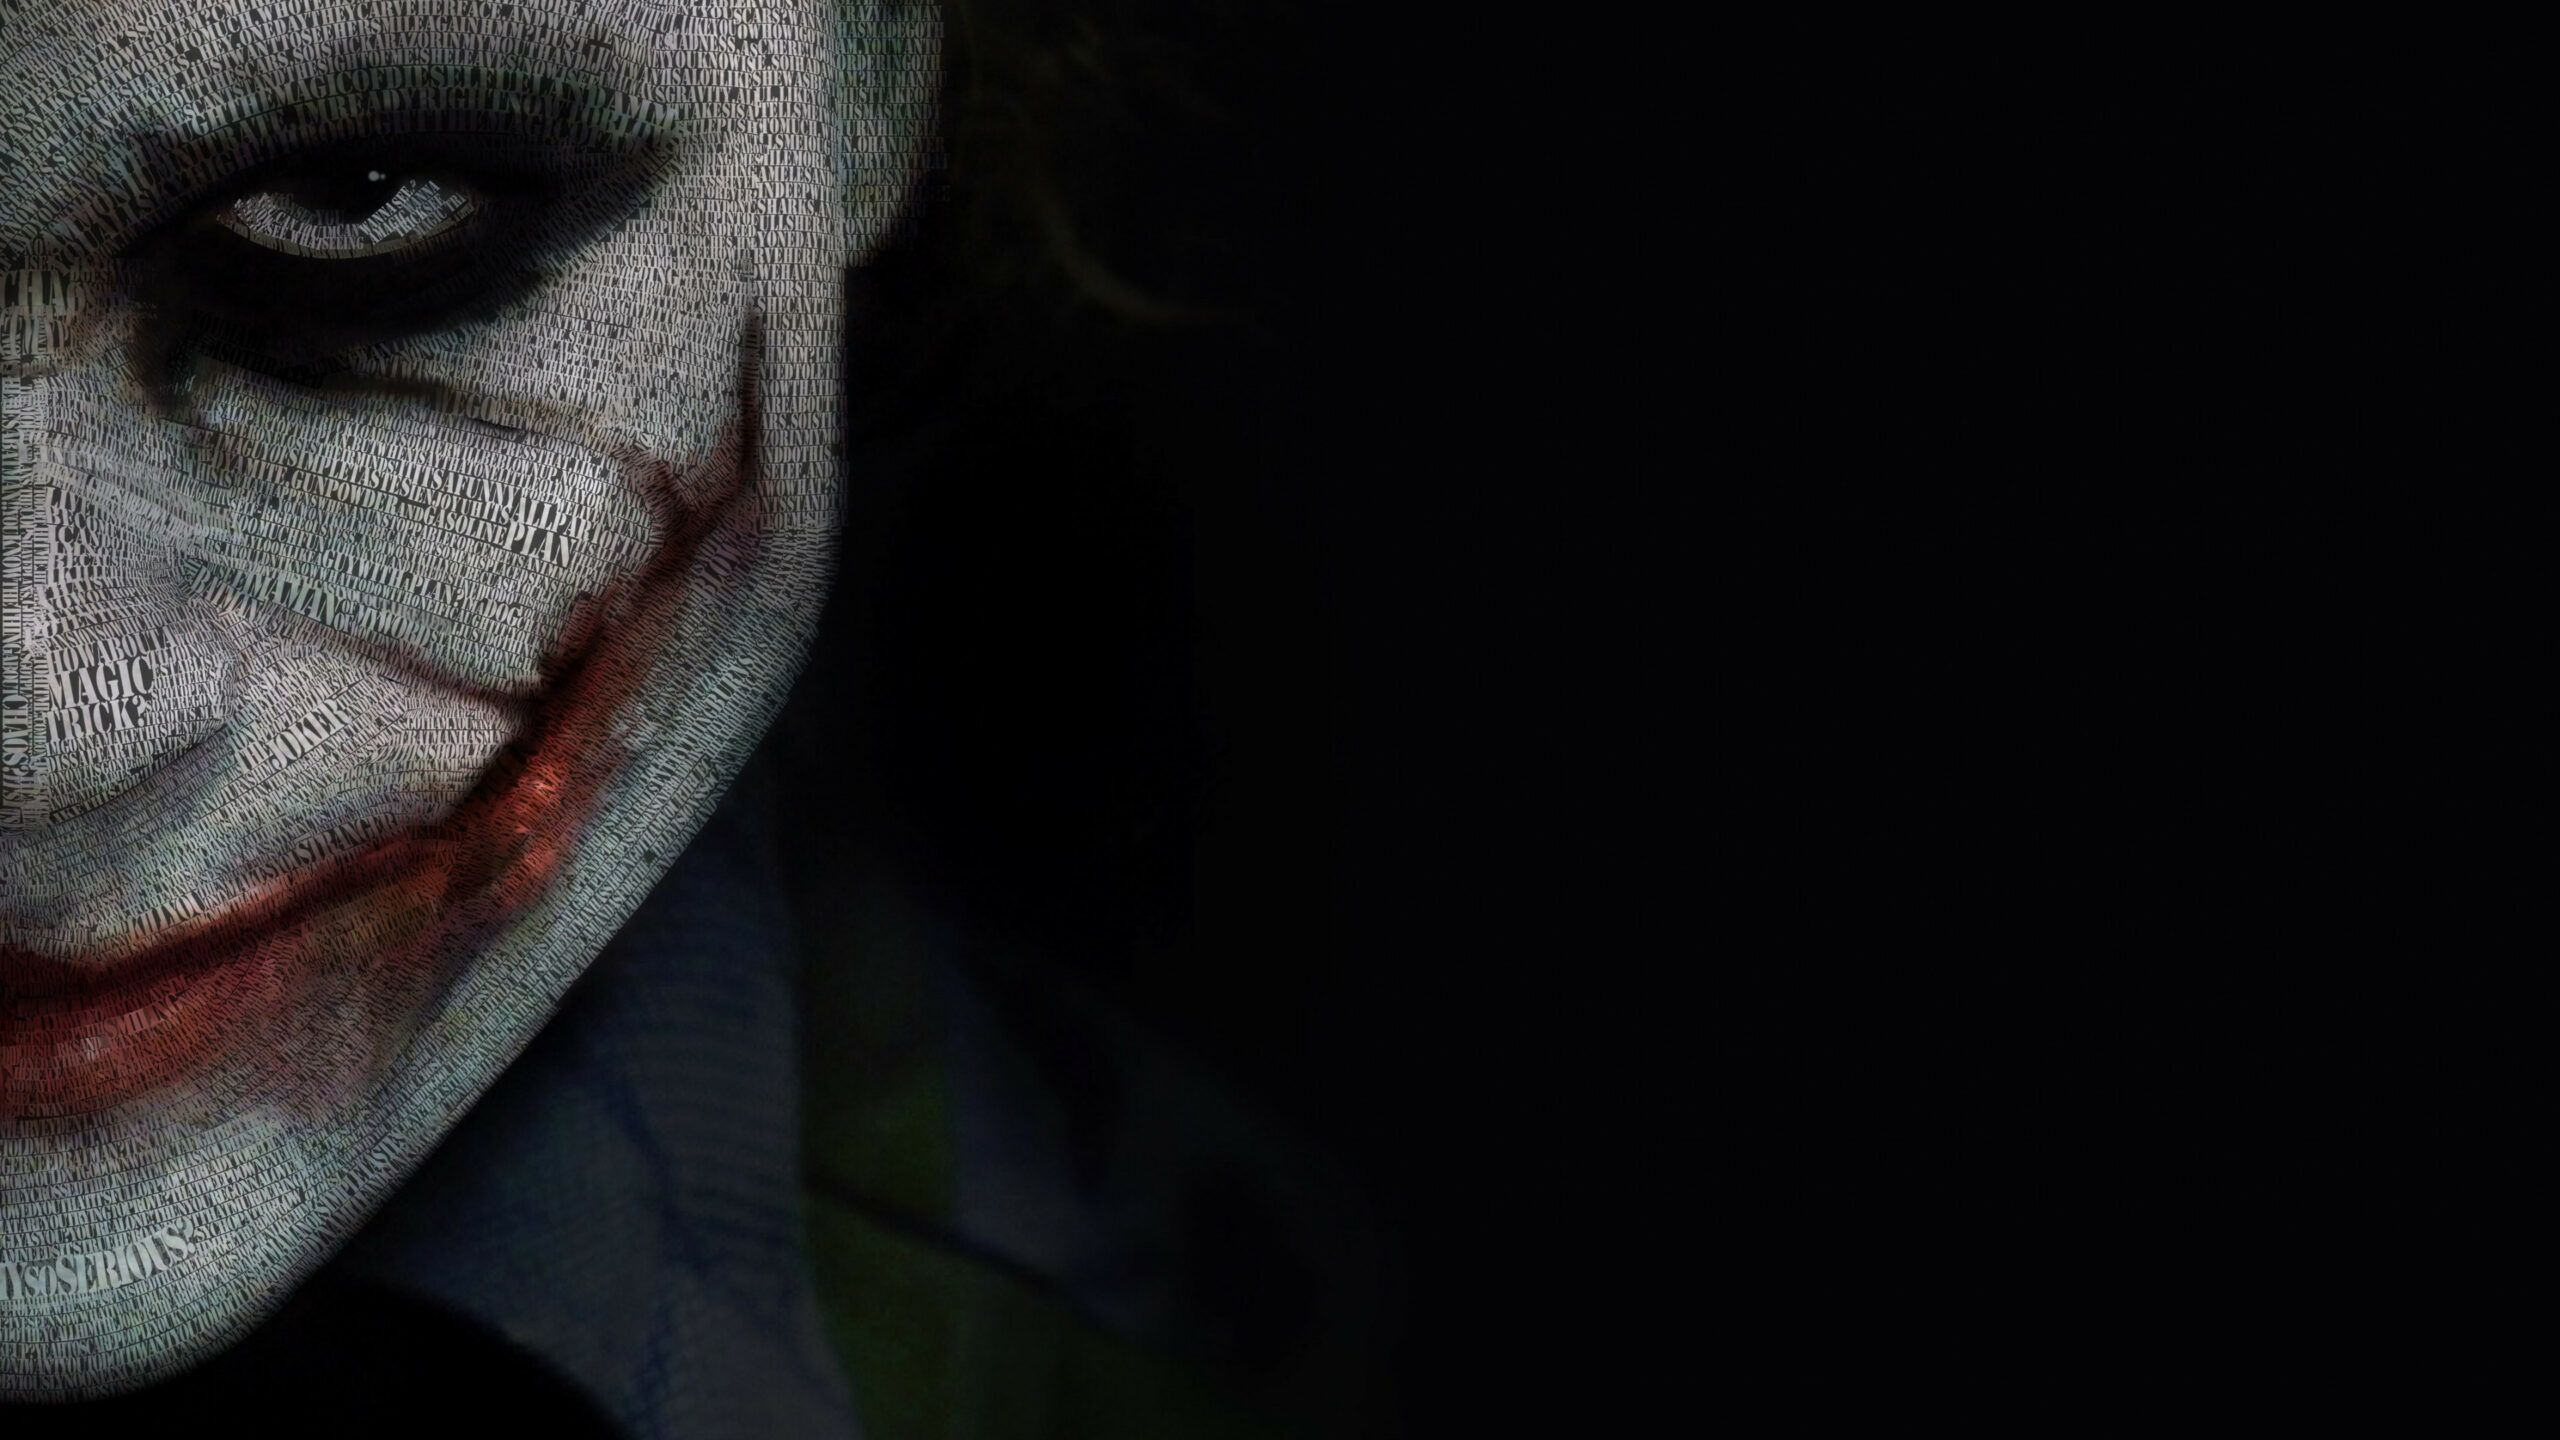 Joker 4k Ultra Hd Wallpaper Download Joker Pics Joker Wallpapers Joker